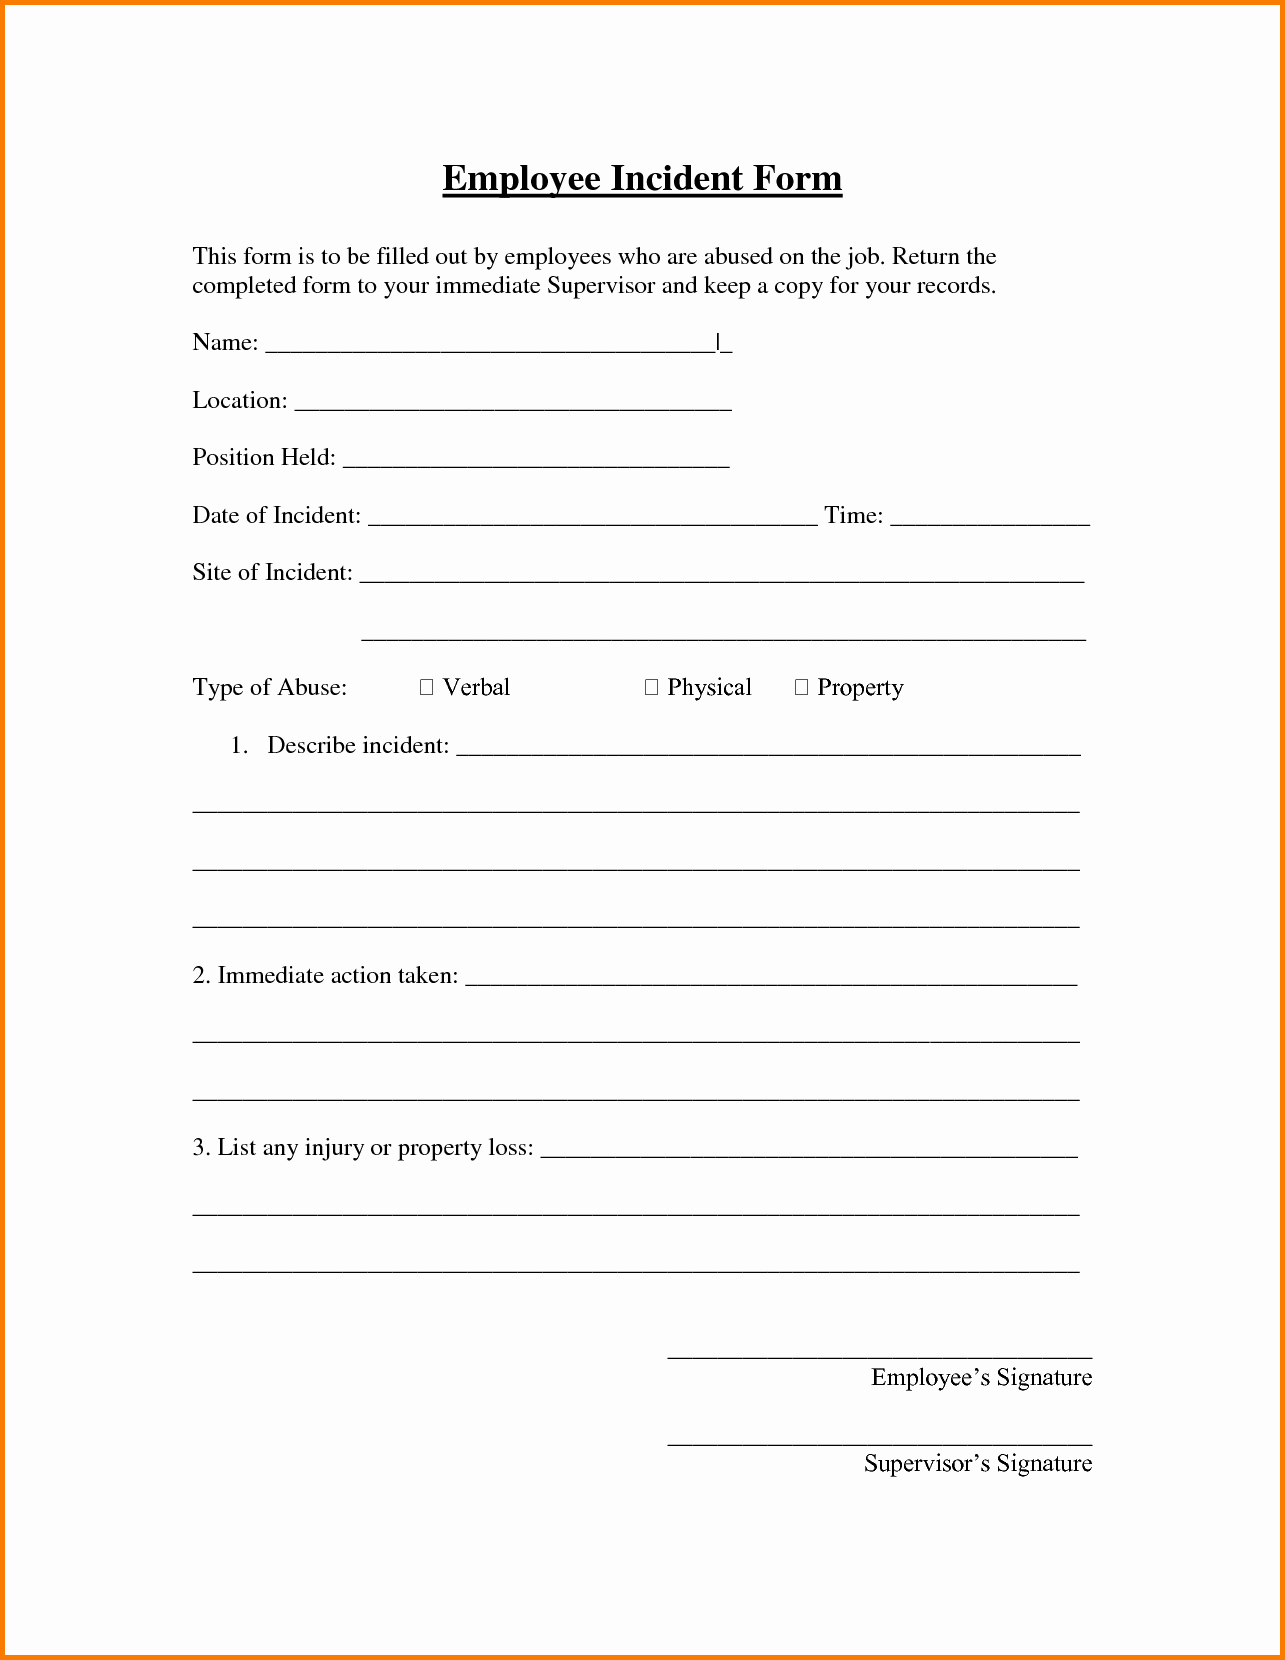 Incident Report Template Microsoft Luxury 7 Employee Incident Report Template